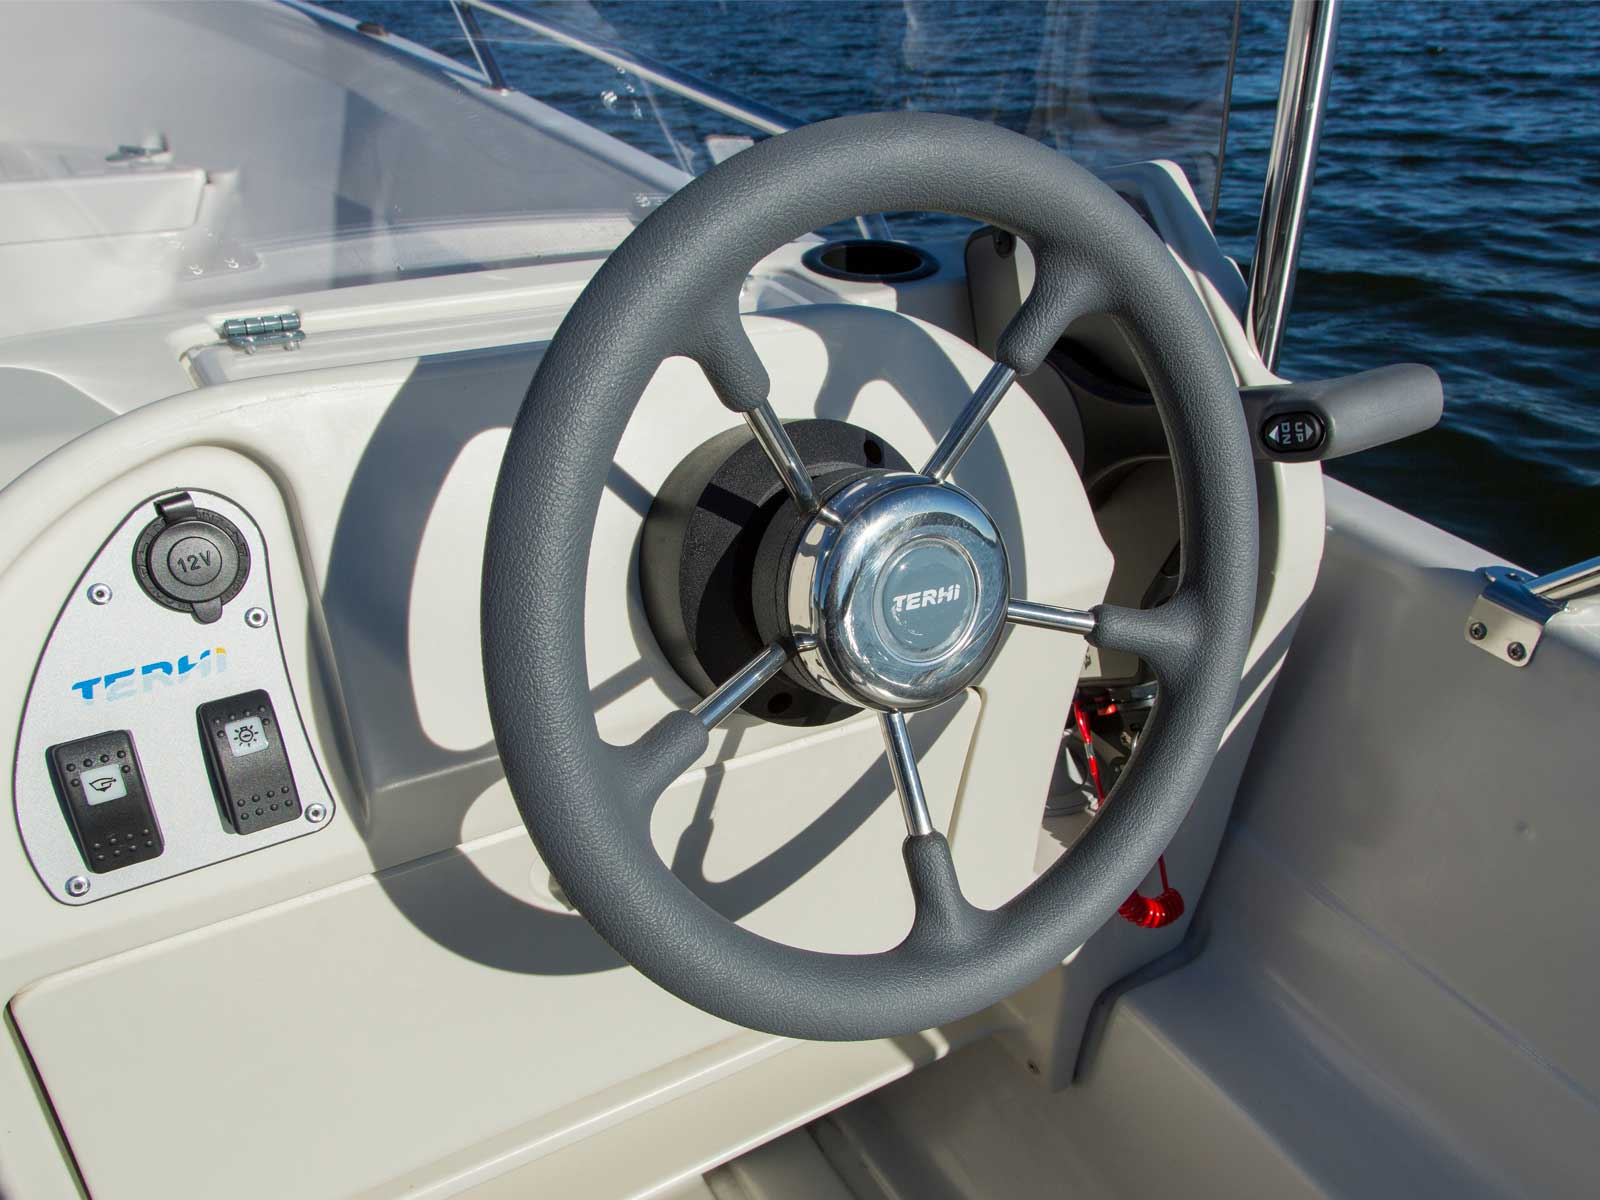 Terhi Nordic 6020 C | Boat Solutions, Utting am Ammersee